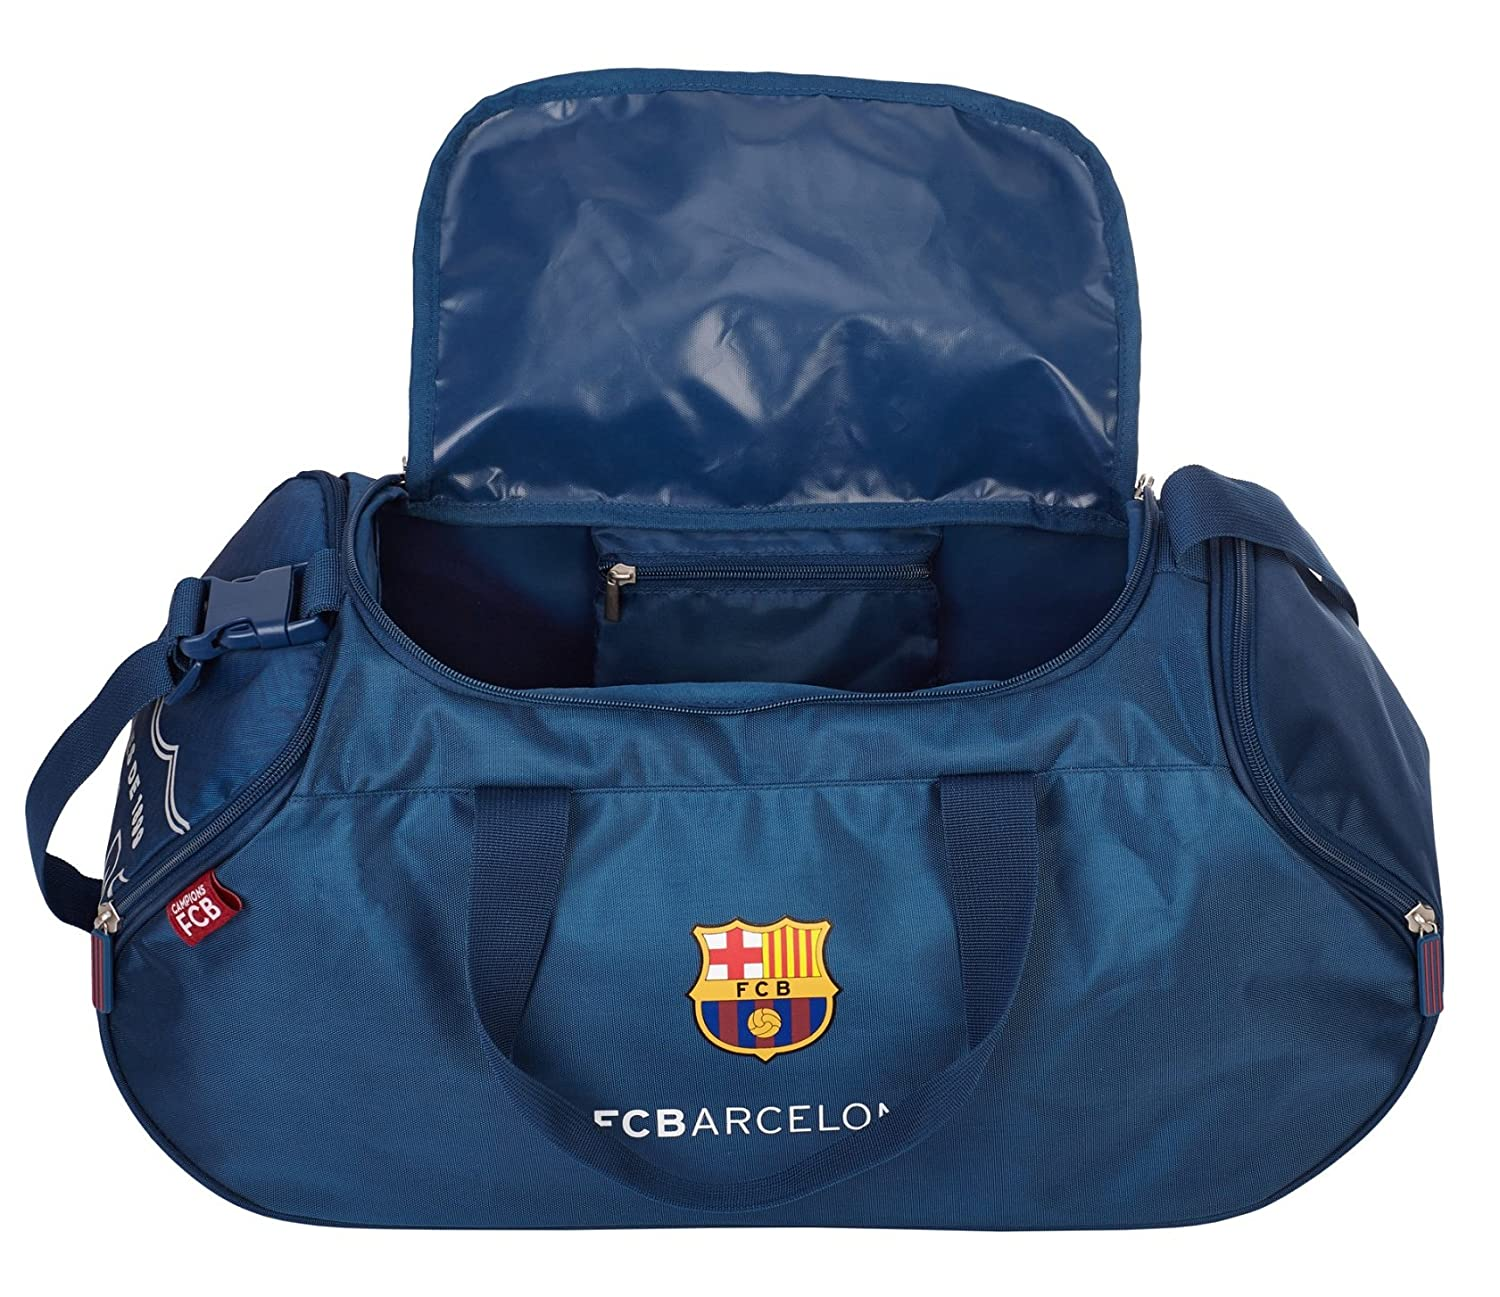 FC Barcelona grand sac de sport voyage piscine activit/és extrascolaires fan Champion Club Football FC Barcelone